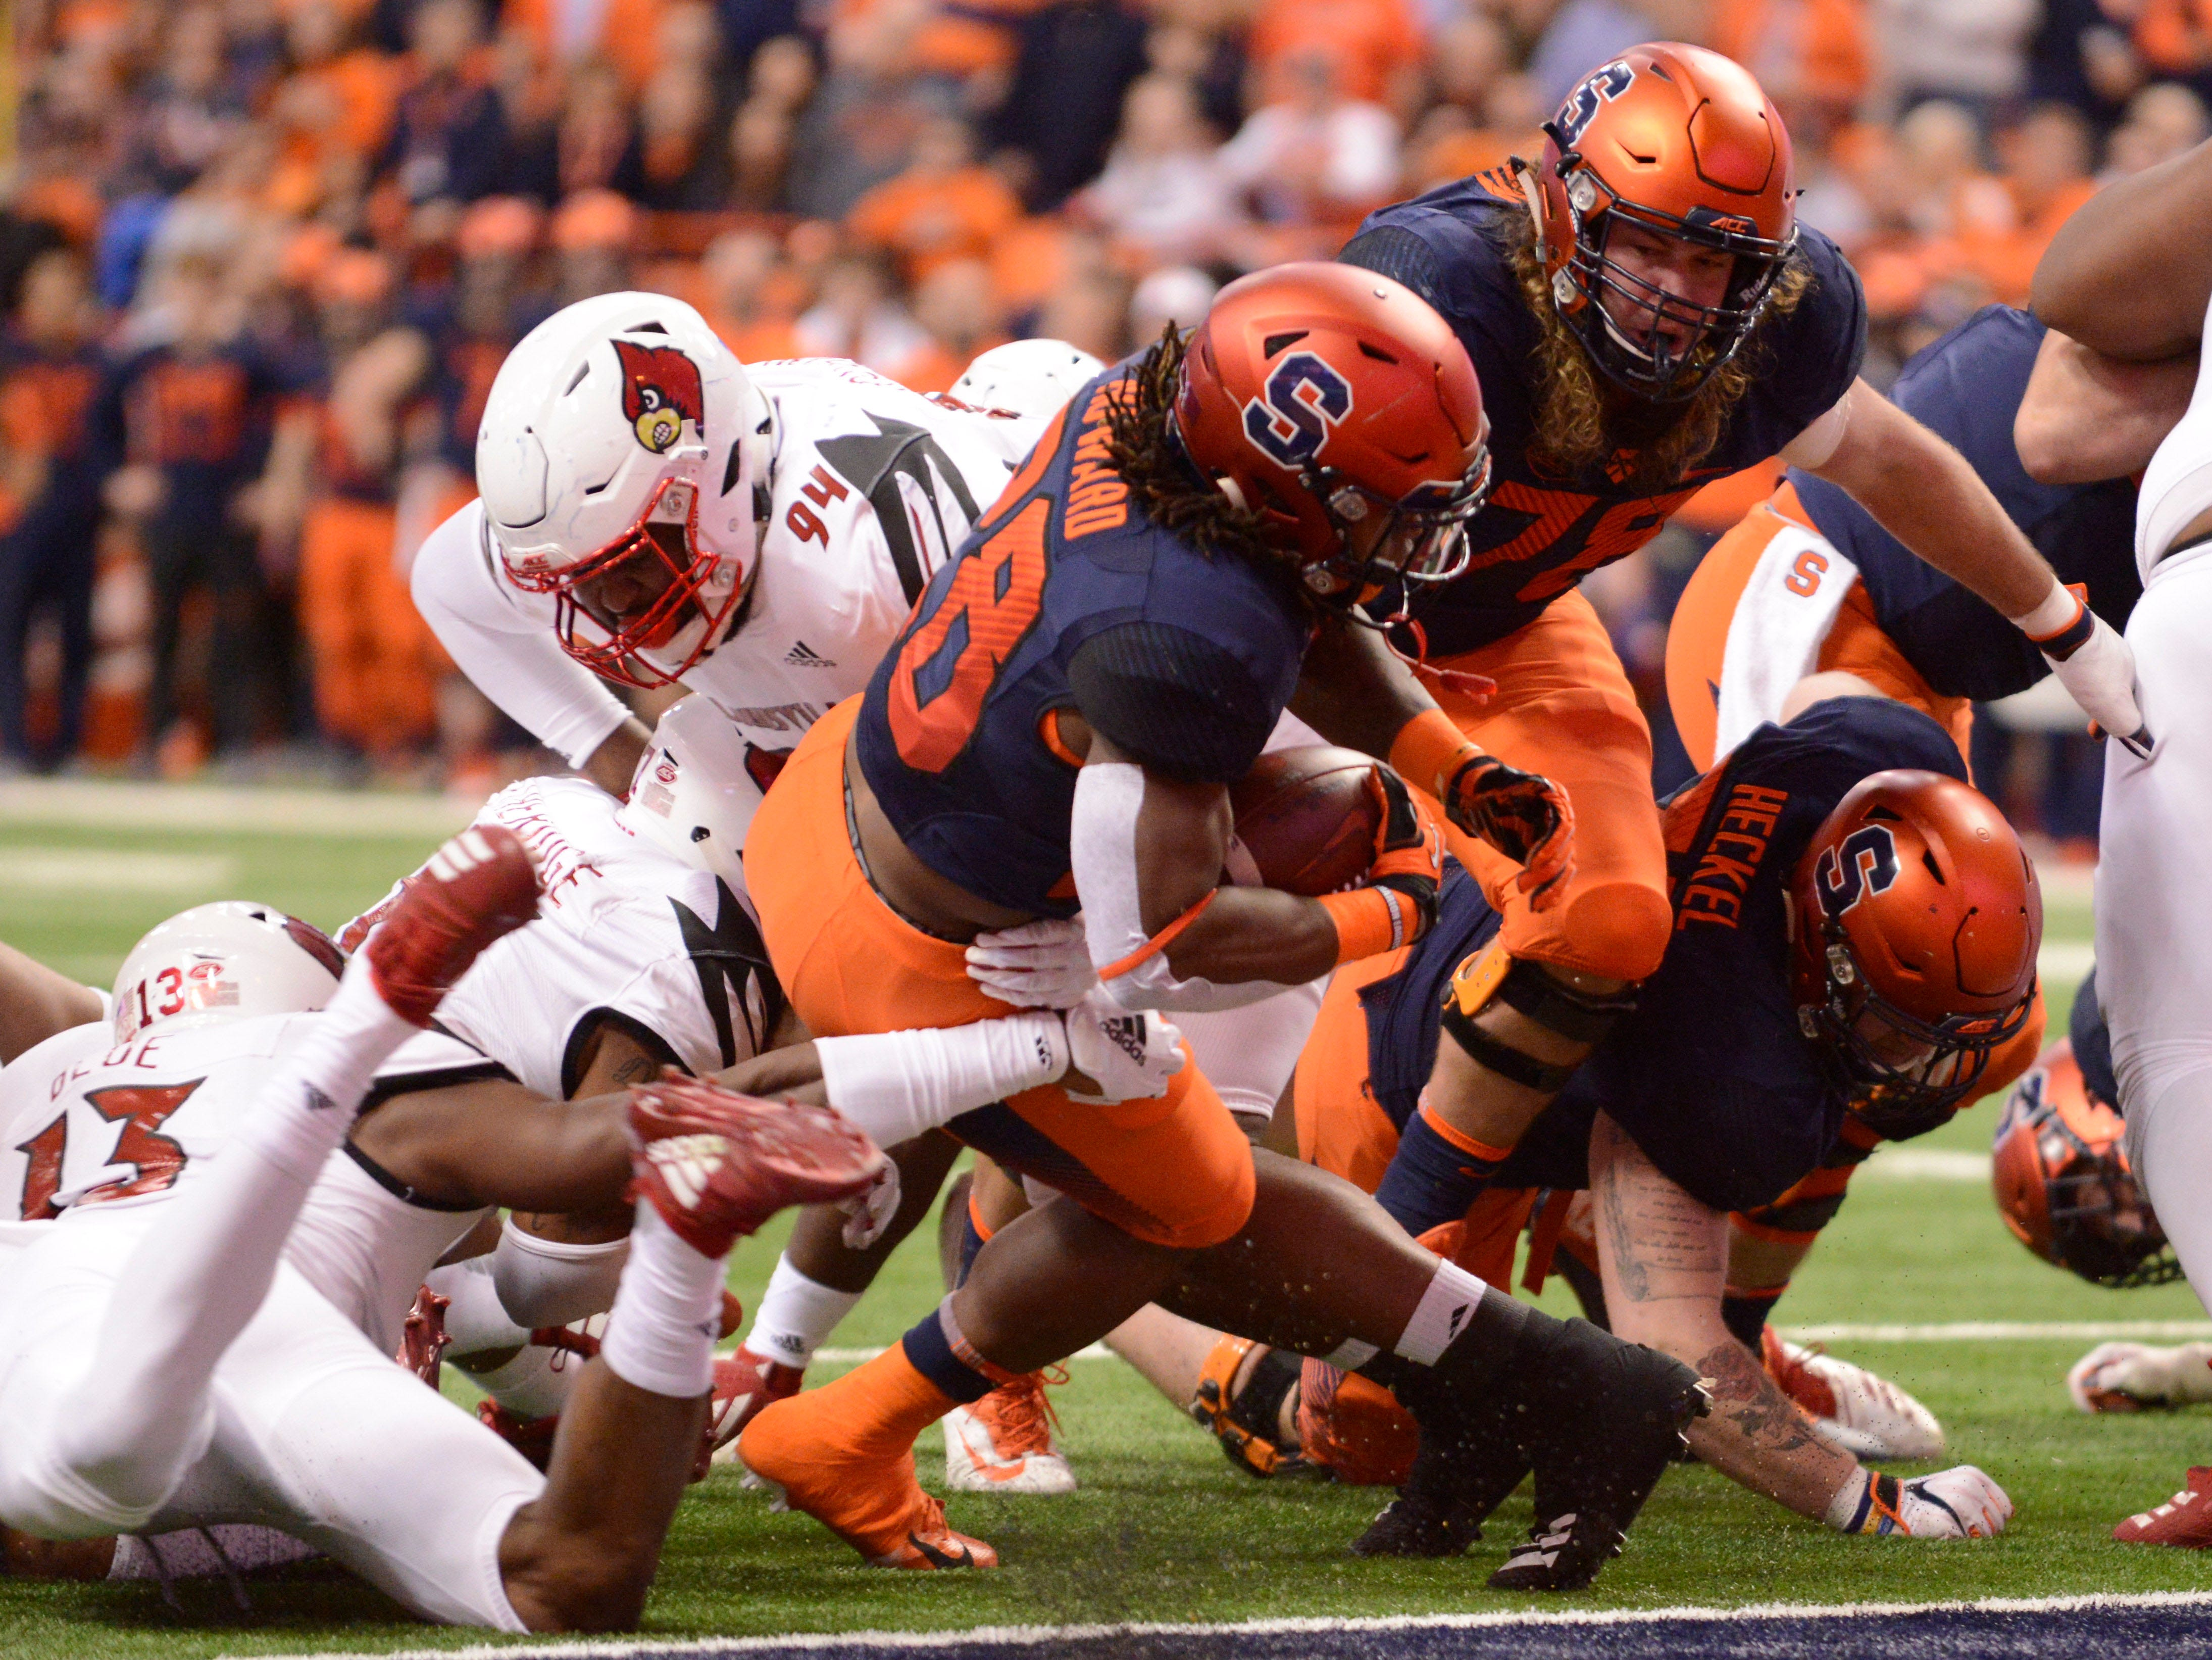 Syracuse Orange running back Jarveon Howard (28) scores a touchdown against the Louisville Cardinals during the first quarter at the Carrier Dome.